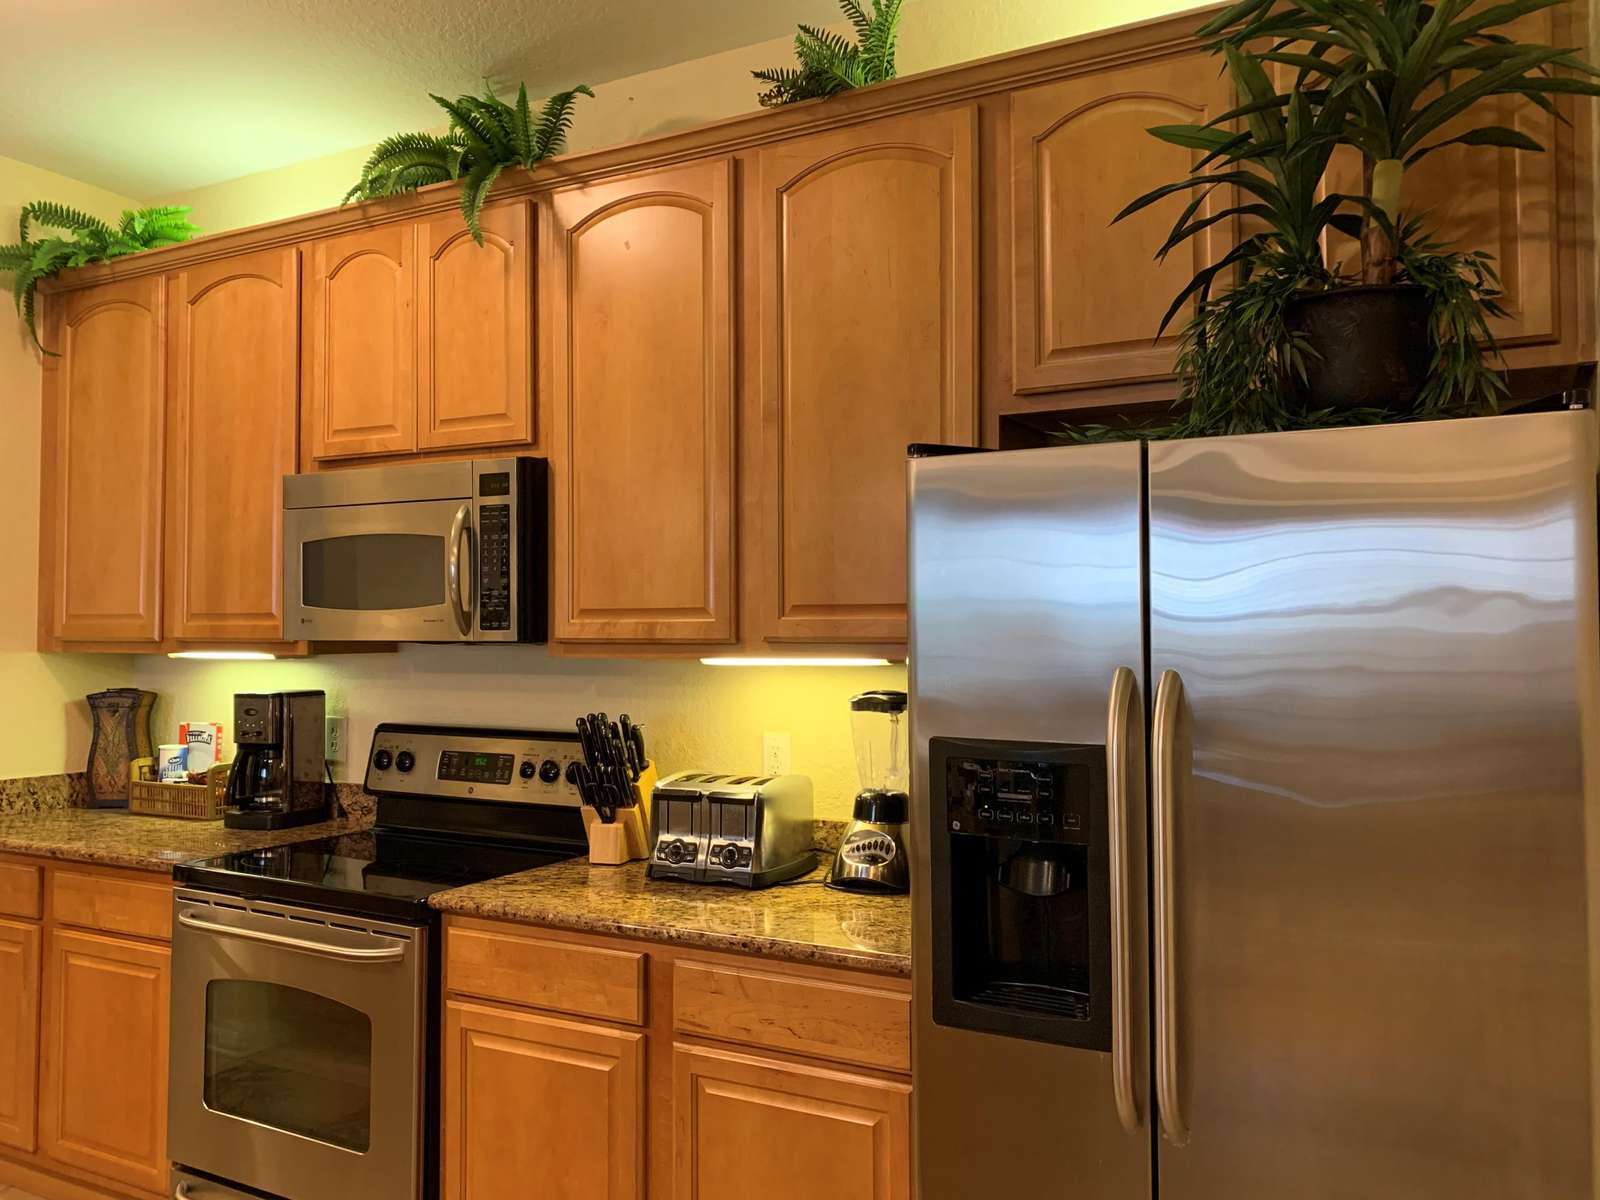 Gorgeous stainless steel appliances